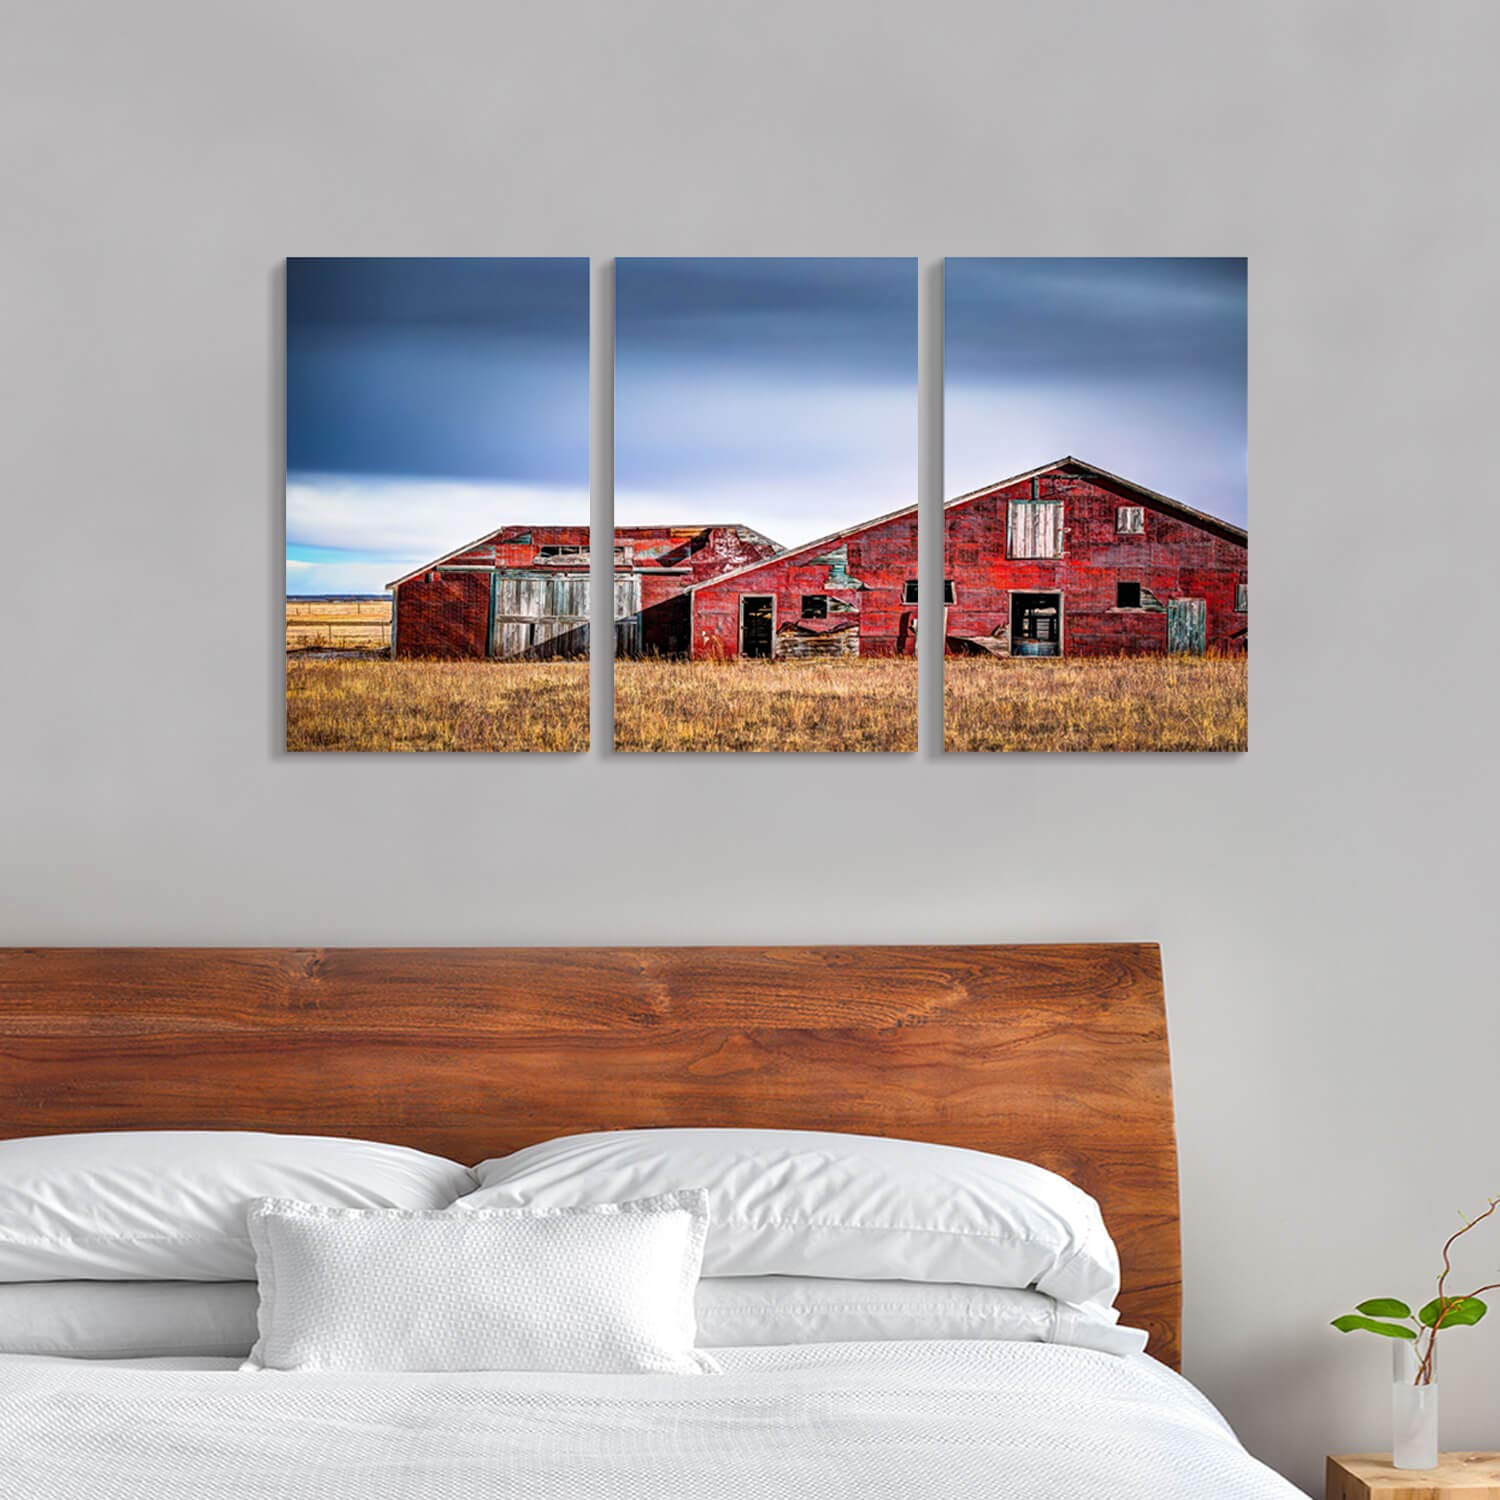 Old Barn Graphic Art Print on Canvas Hardy Gallery Rustic Landscape Artwork Building Picture